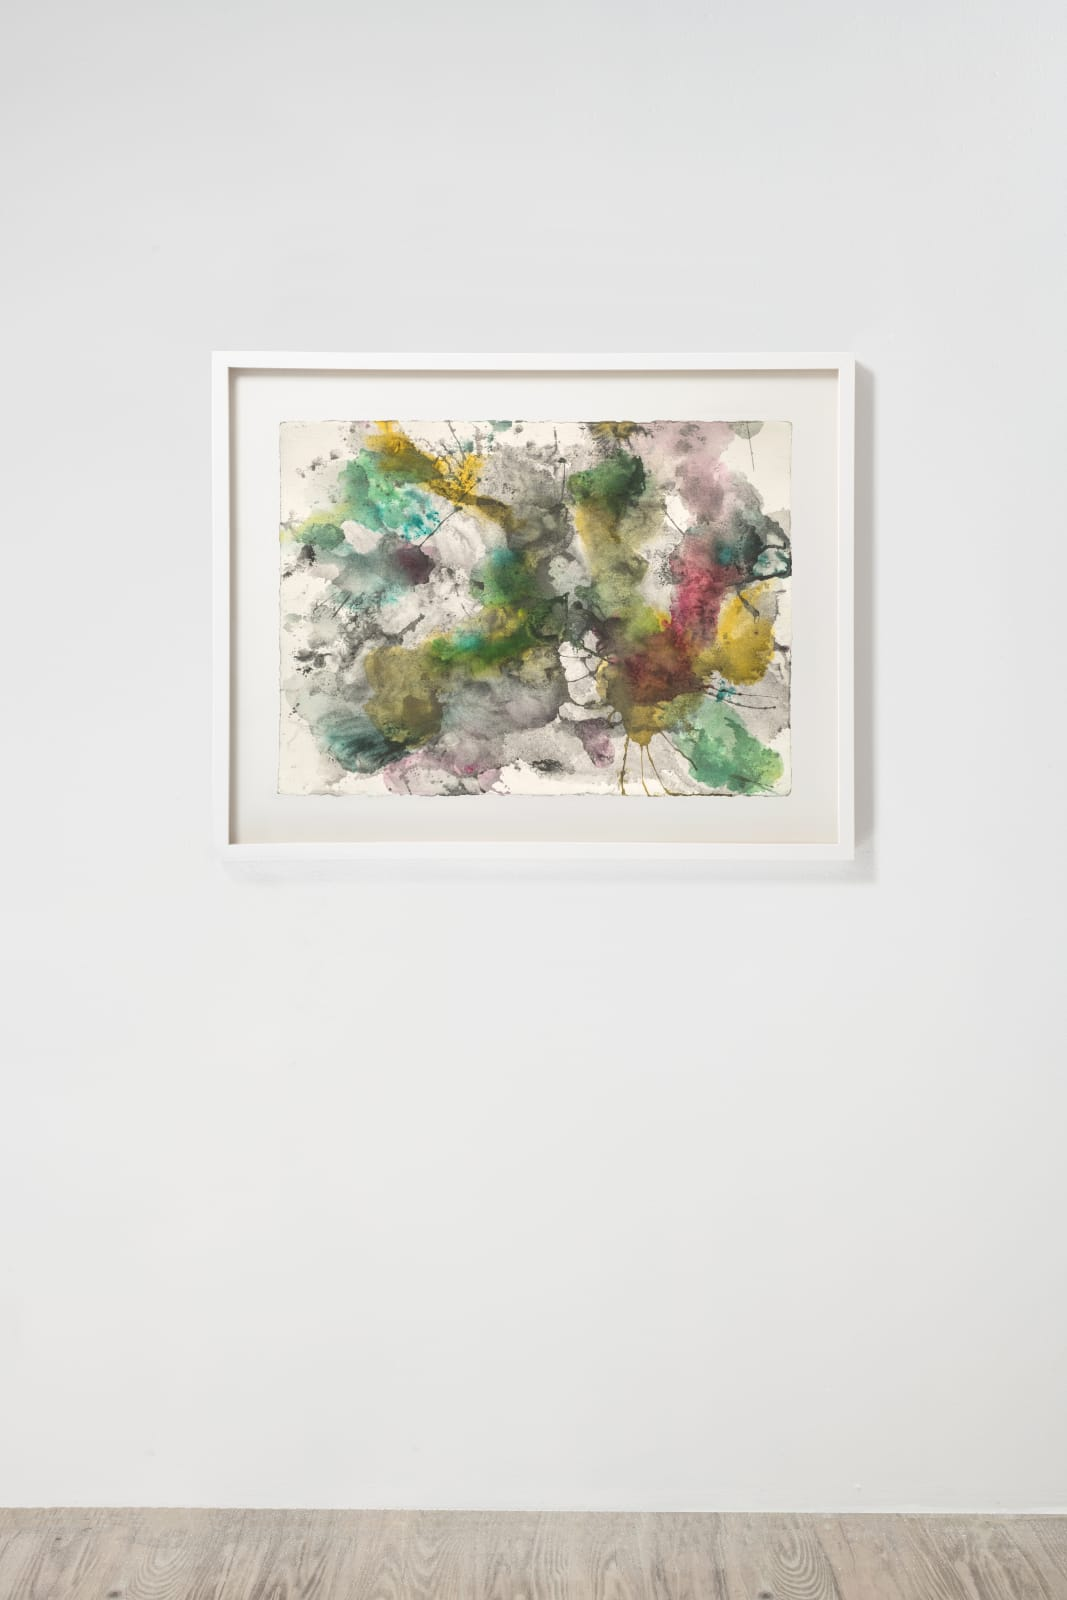 Michele Colburn Bombardment, 2020 Gunpowder and watercolors on Arches paper with deckled edges 55.9 x 76.2 cm, 22 x 30 in. (Frame not included) Photo: Lee Stalsworth